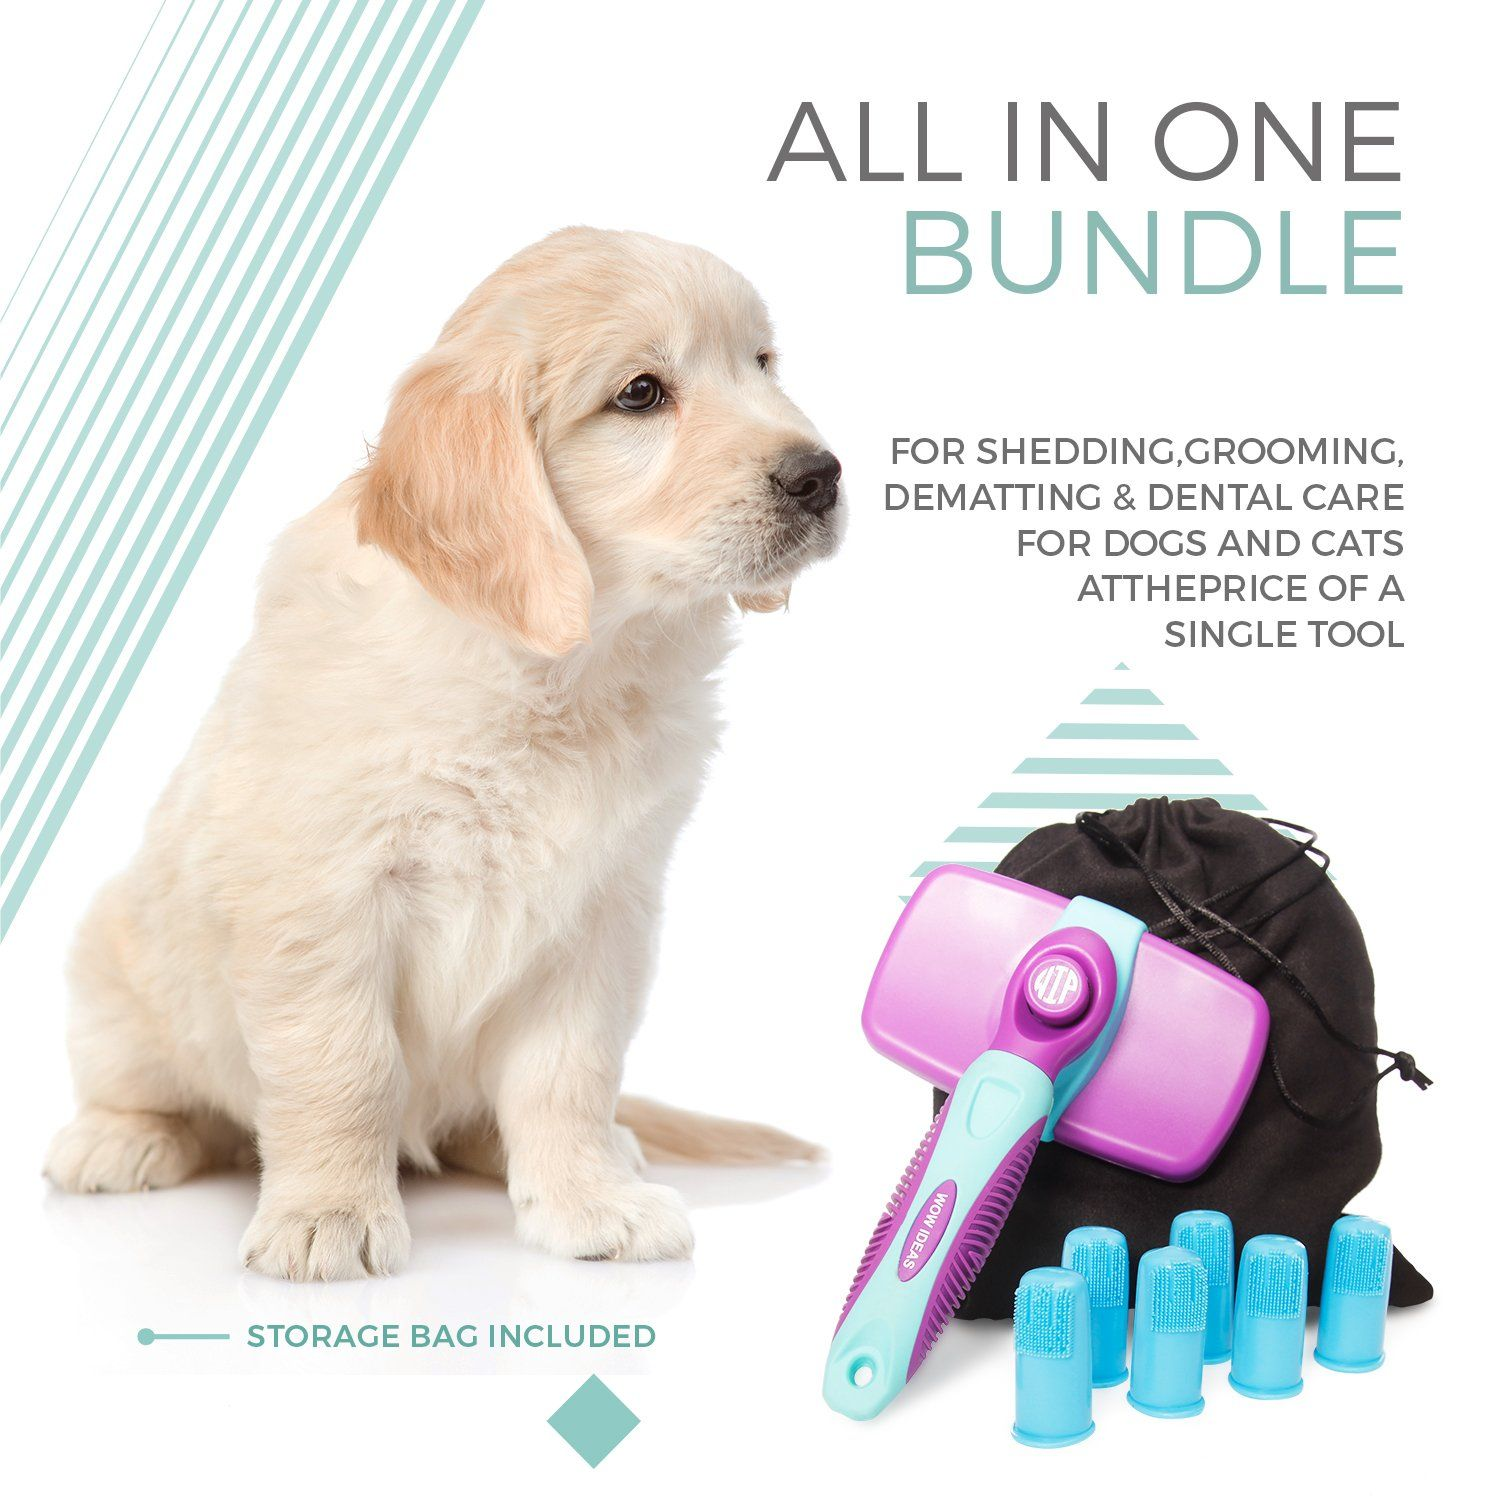 Self Cleaning Slicker Brush And Toothbrush Dental Kit For All Cats And Dogs Pets With Short To Long Hair Reduces Shed Cat Grooming Cat Grooming Tools Dog Cat